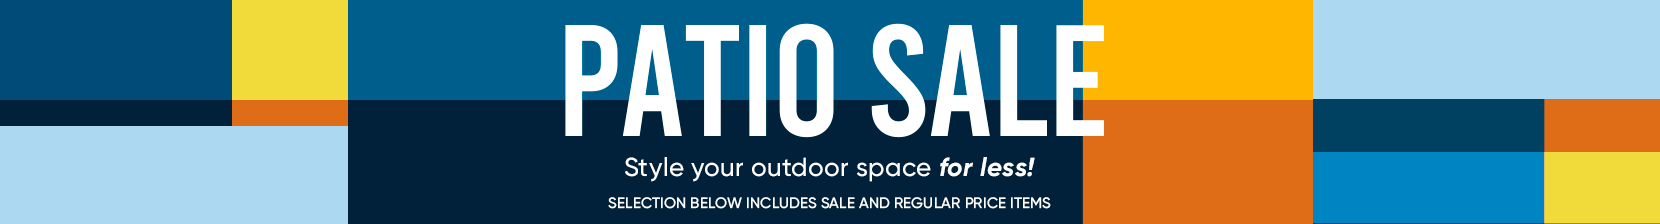 patio sale. style your outdoor space for less. selection below includes sale and regular price items